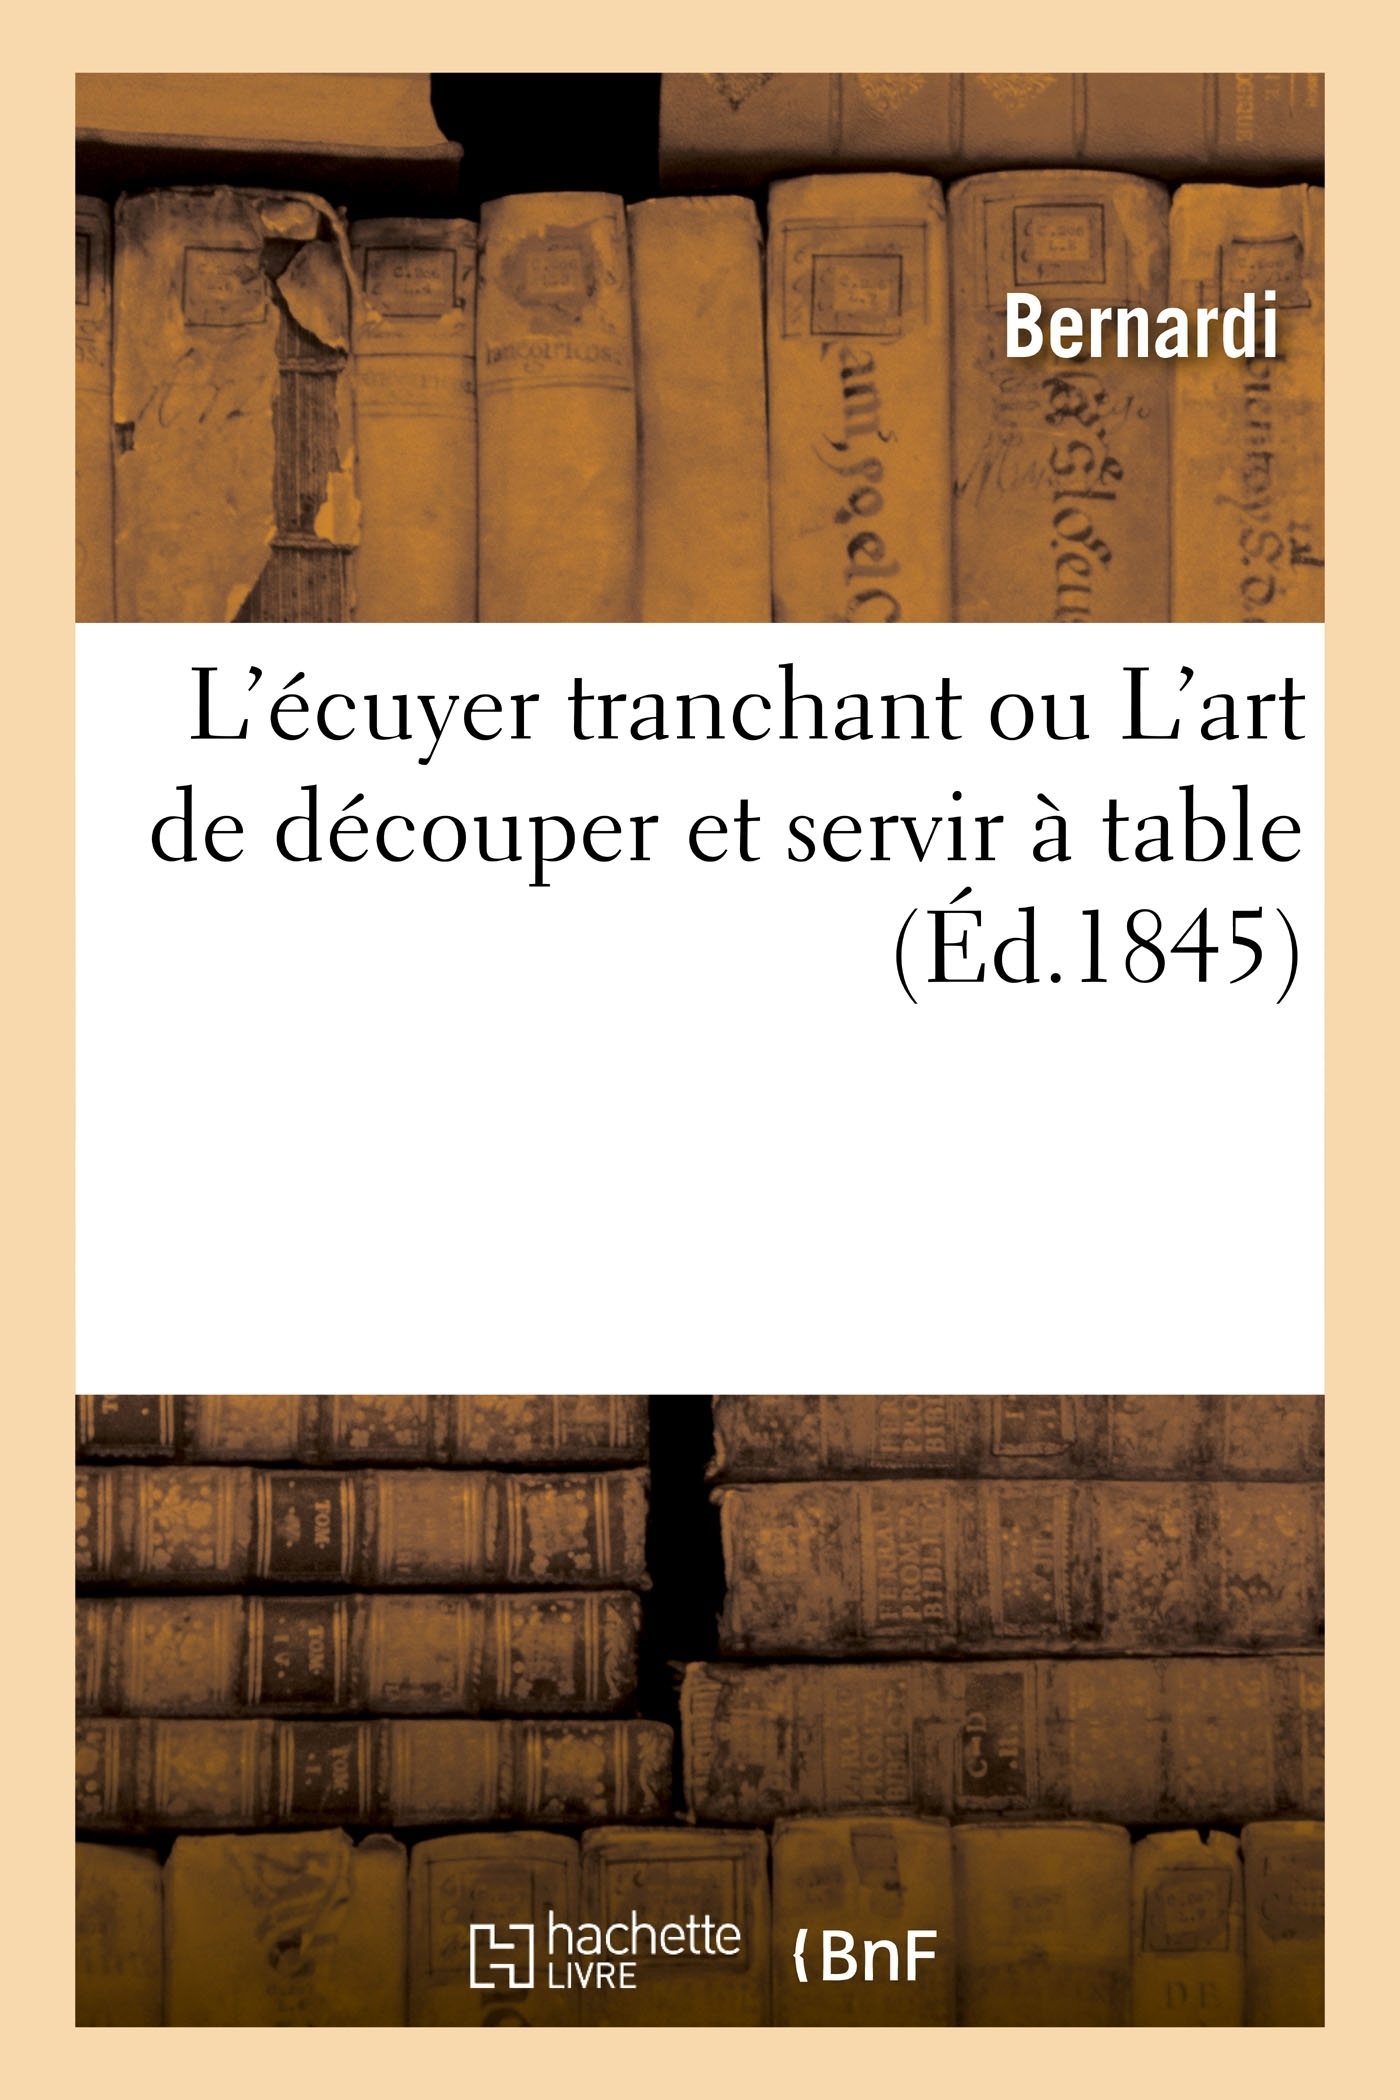 L'ECUYER TRANCHANT OU L'ART DE DECOUPER ET SERVIR A TABLE - COMPLEMENT INDISPENSABLE DU CUISINIER RO